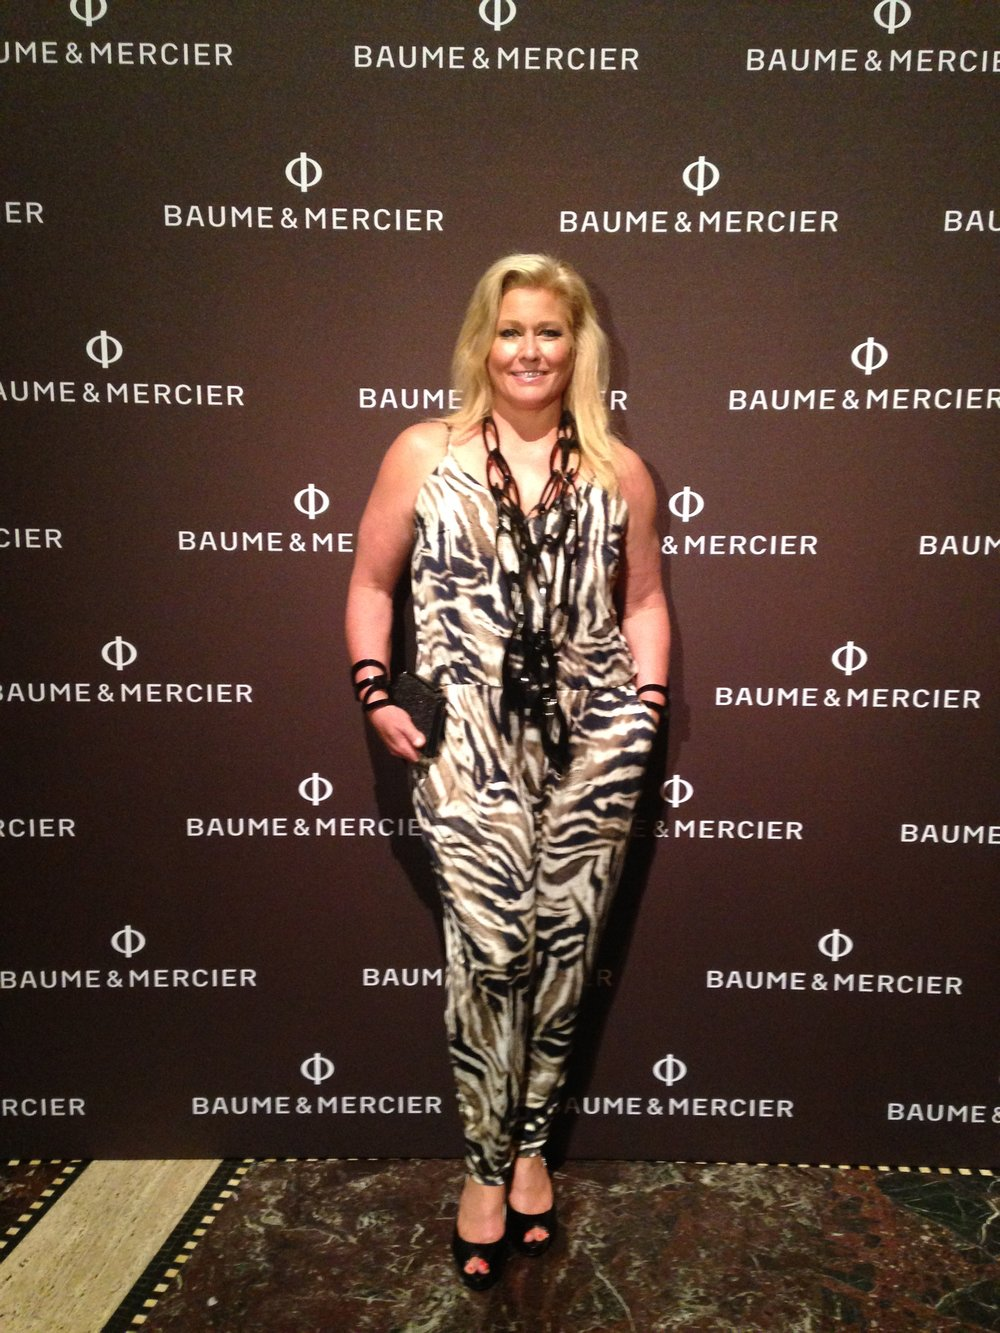 EMME at Baume & Mercier